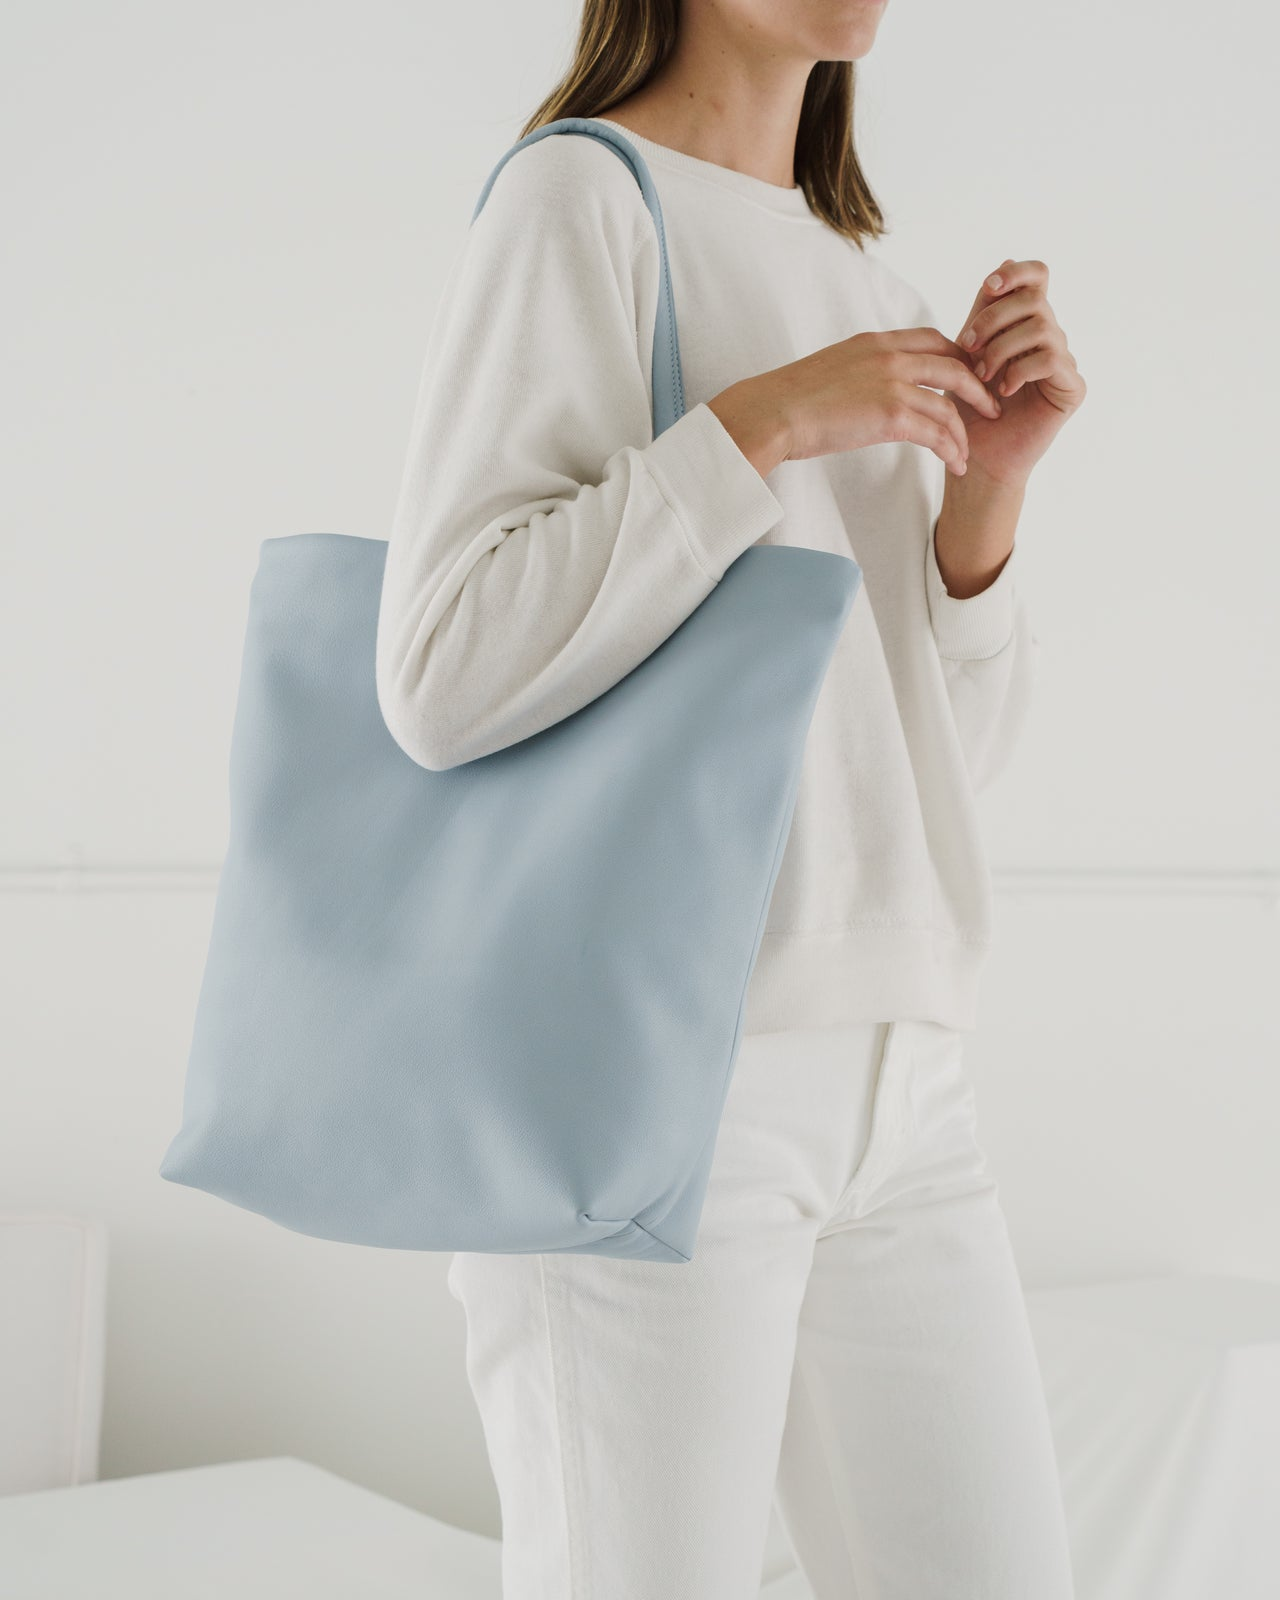 Soft Large Tote - Soft Blue